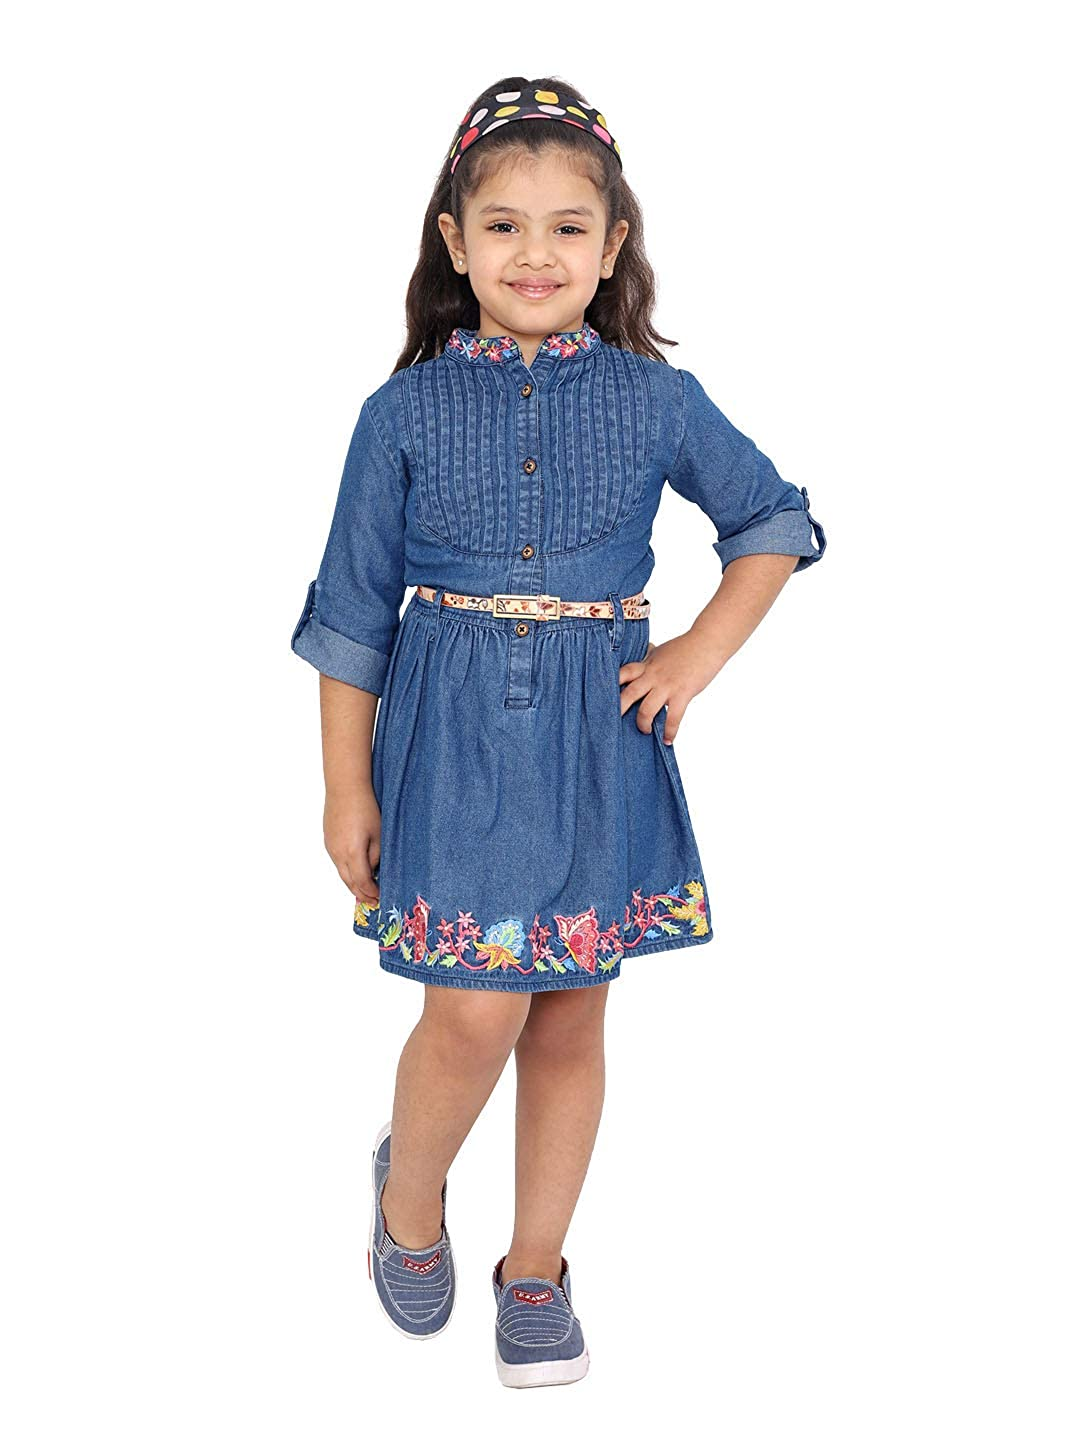 Girlistan - How to choose a casual dress for a girl child that is 8 years old?